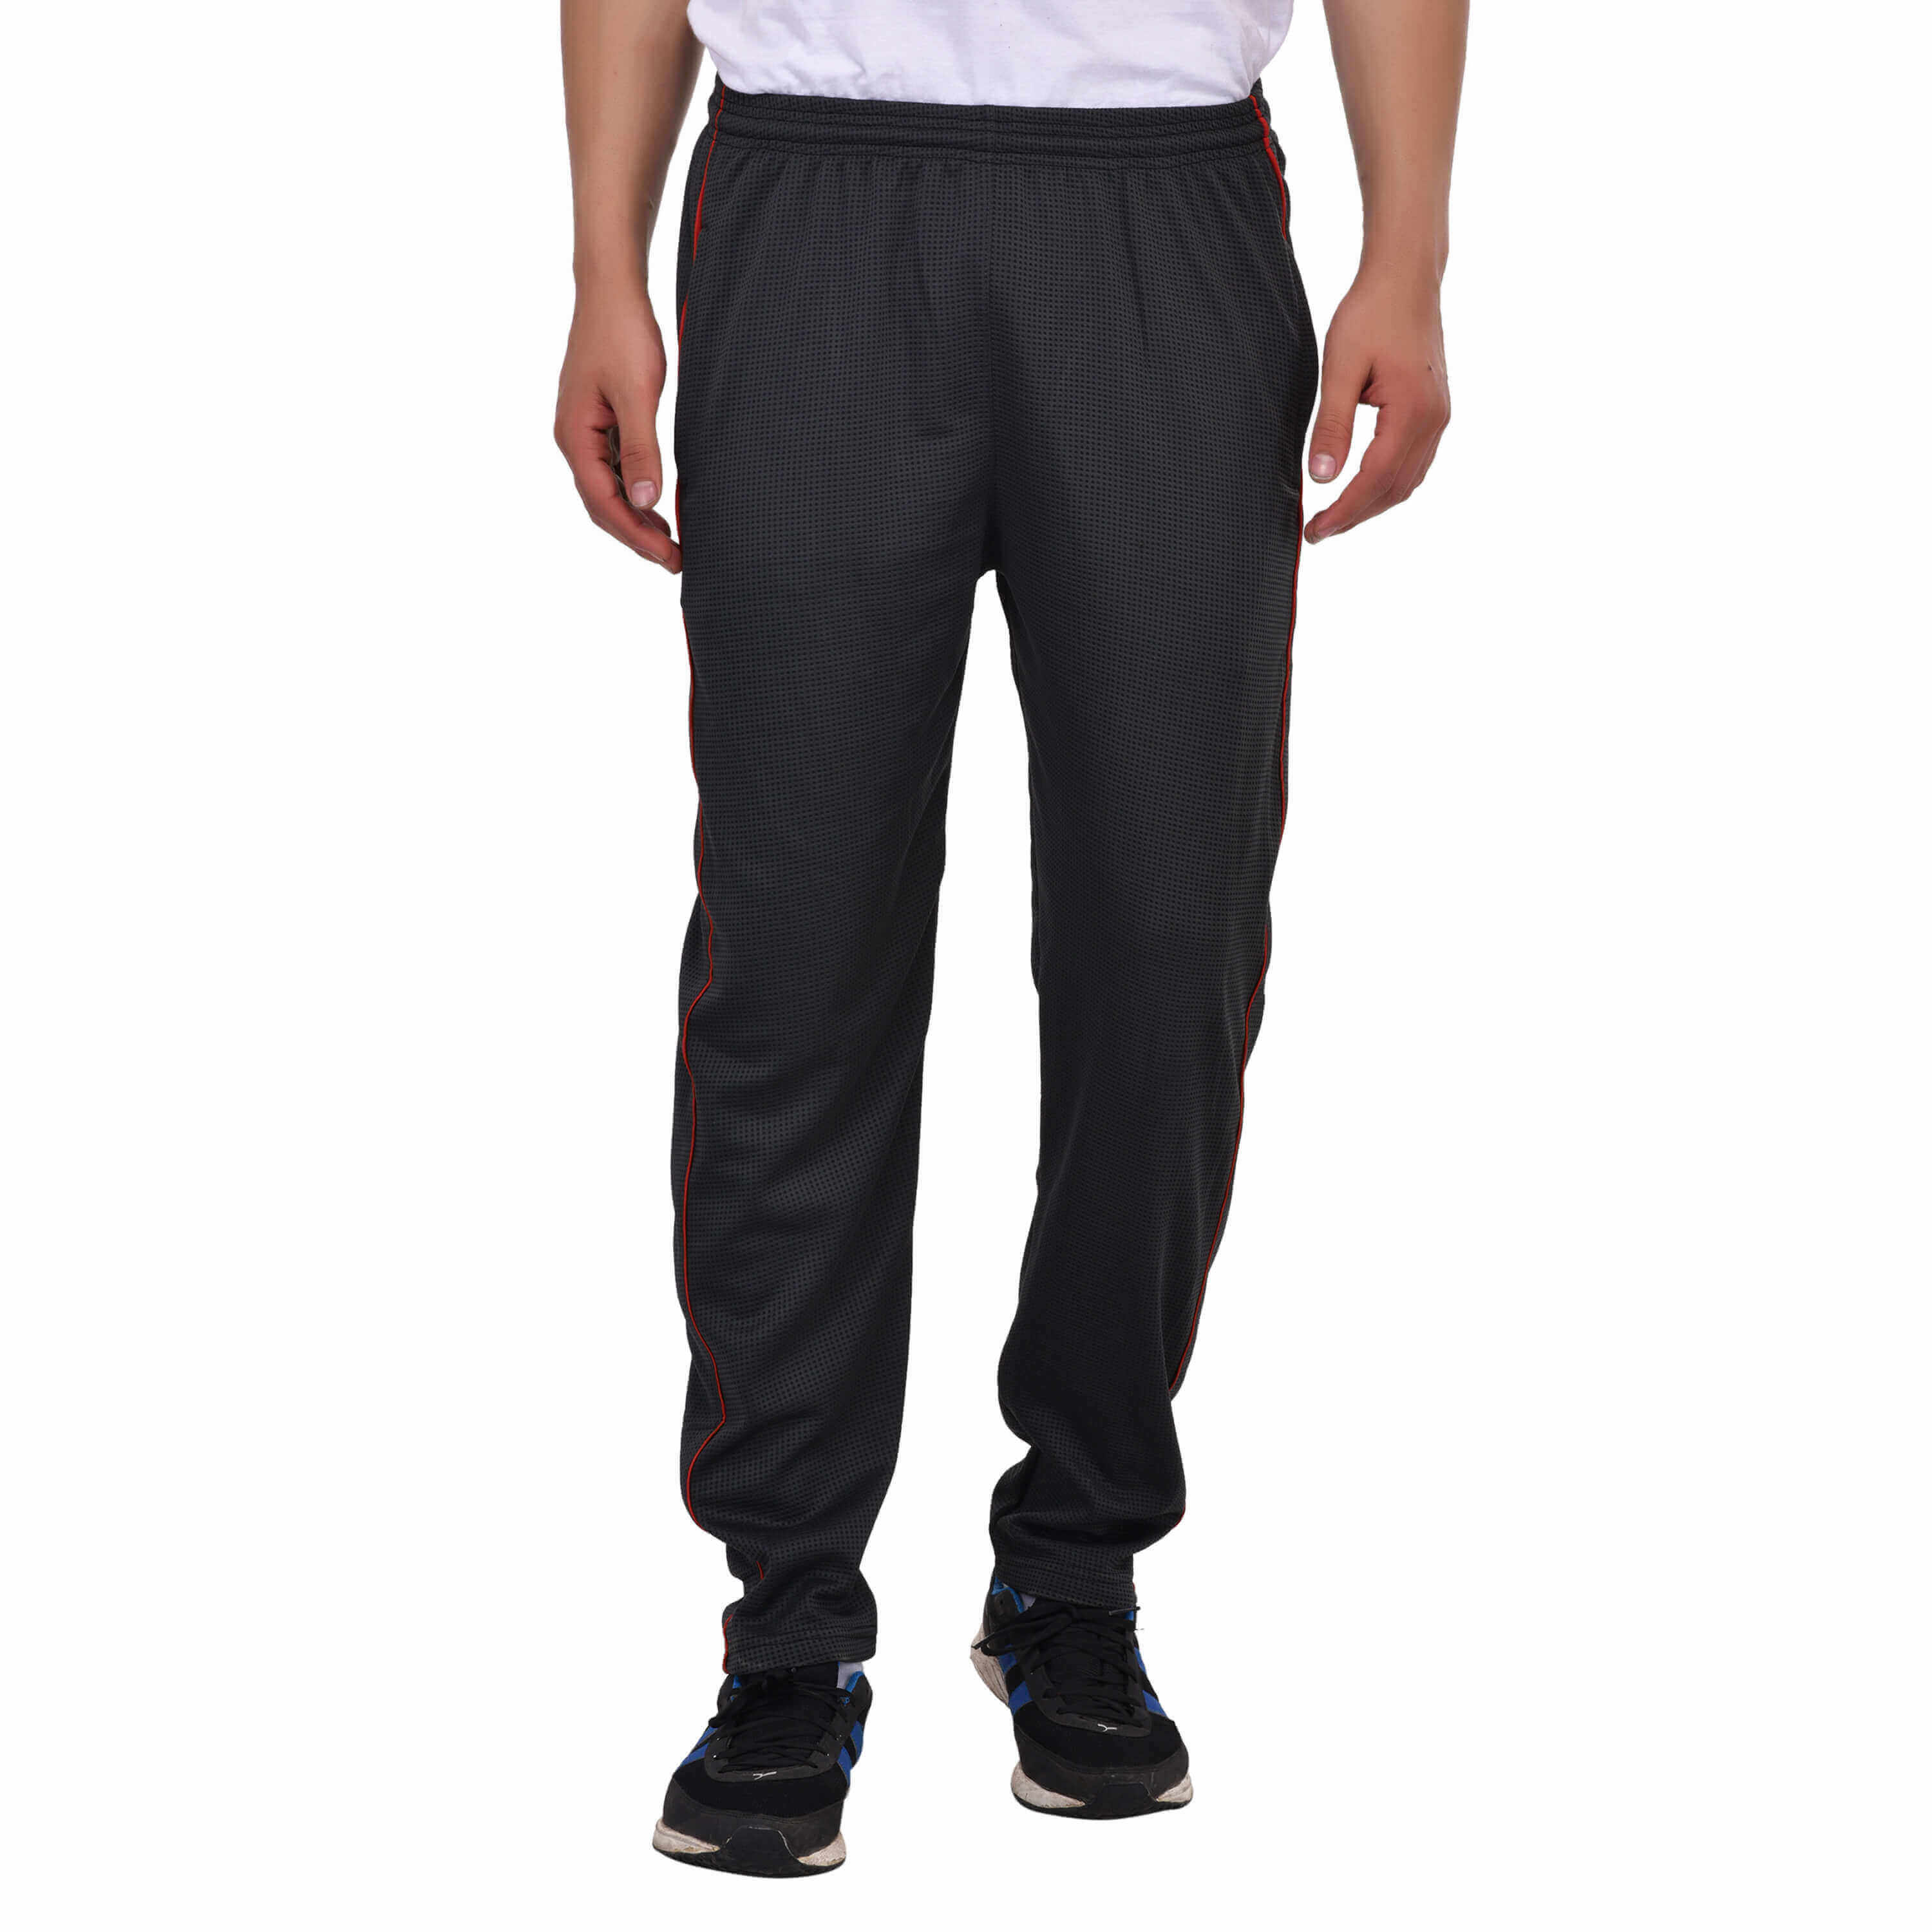 Gym Trousers Manufacturers in Solapur